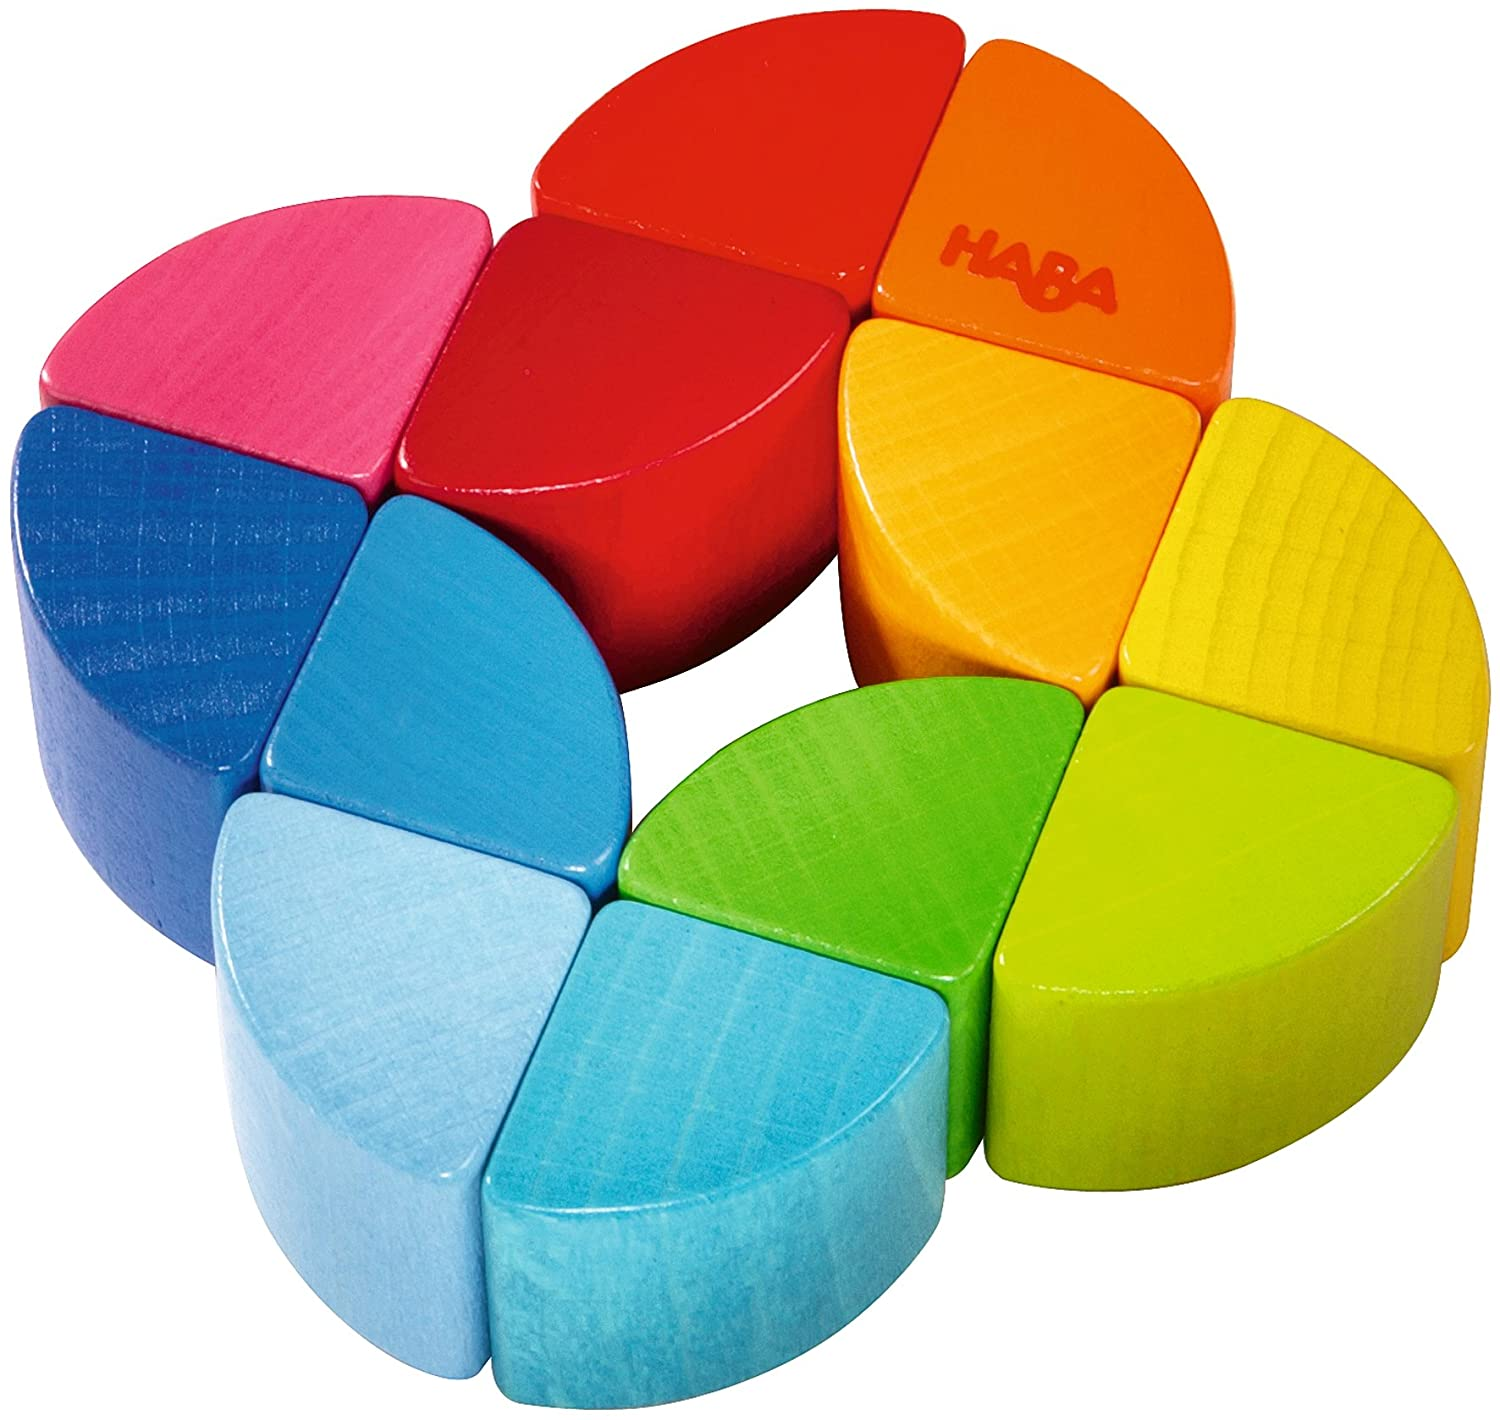 HABA Rainbow Ring Wooden Clutching Toy (Made in Germany) 2411